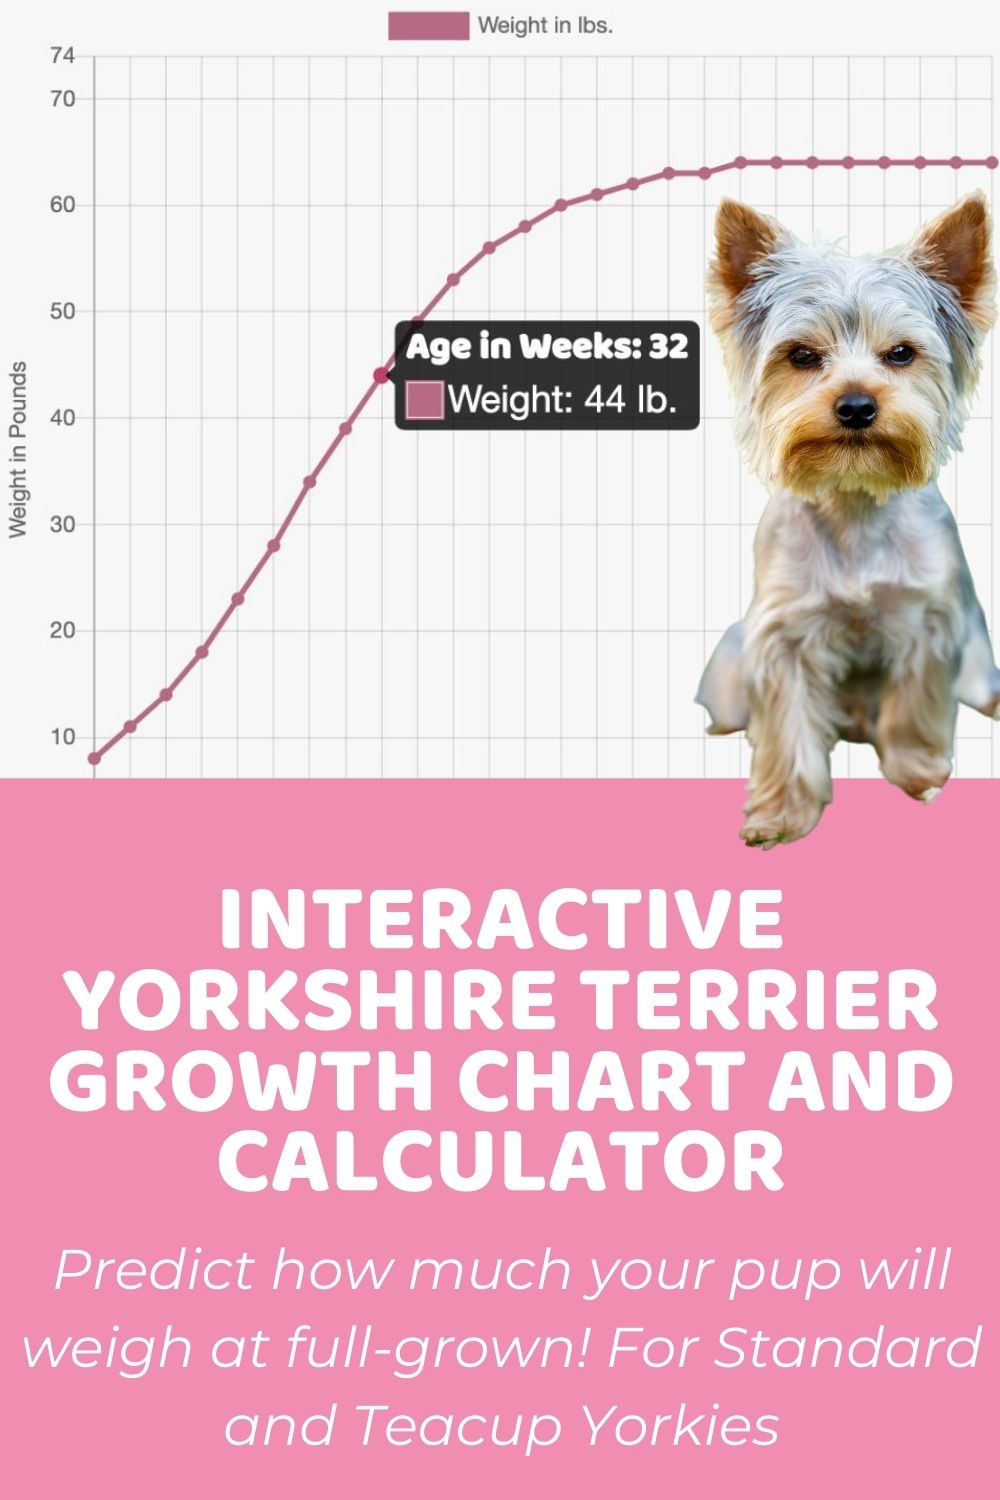 Interactive Yorkshire Terrier Yorkie Growth Chart and Calculator